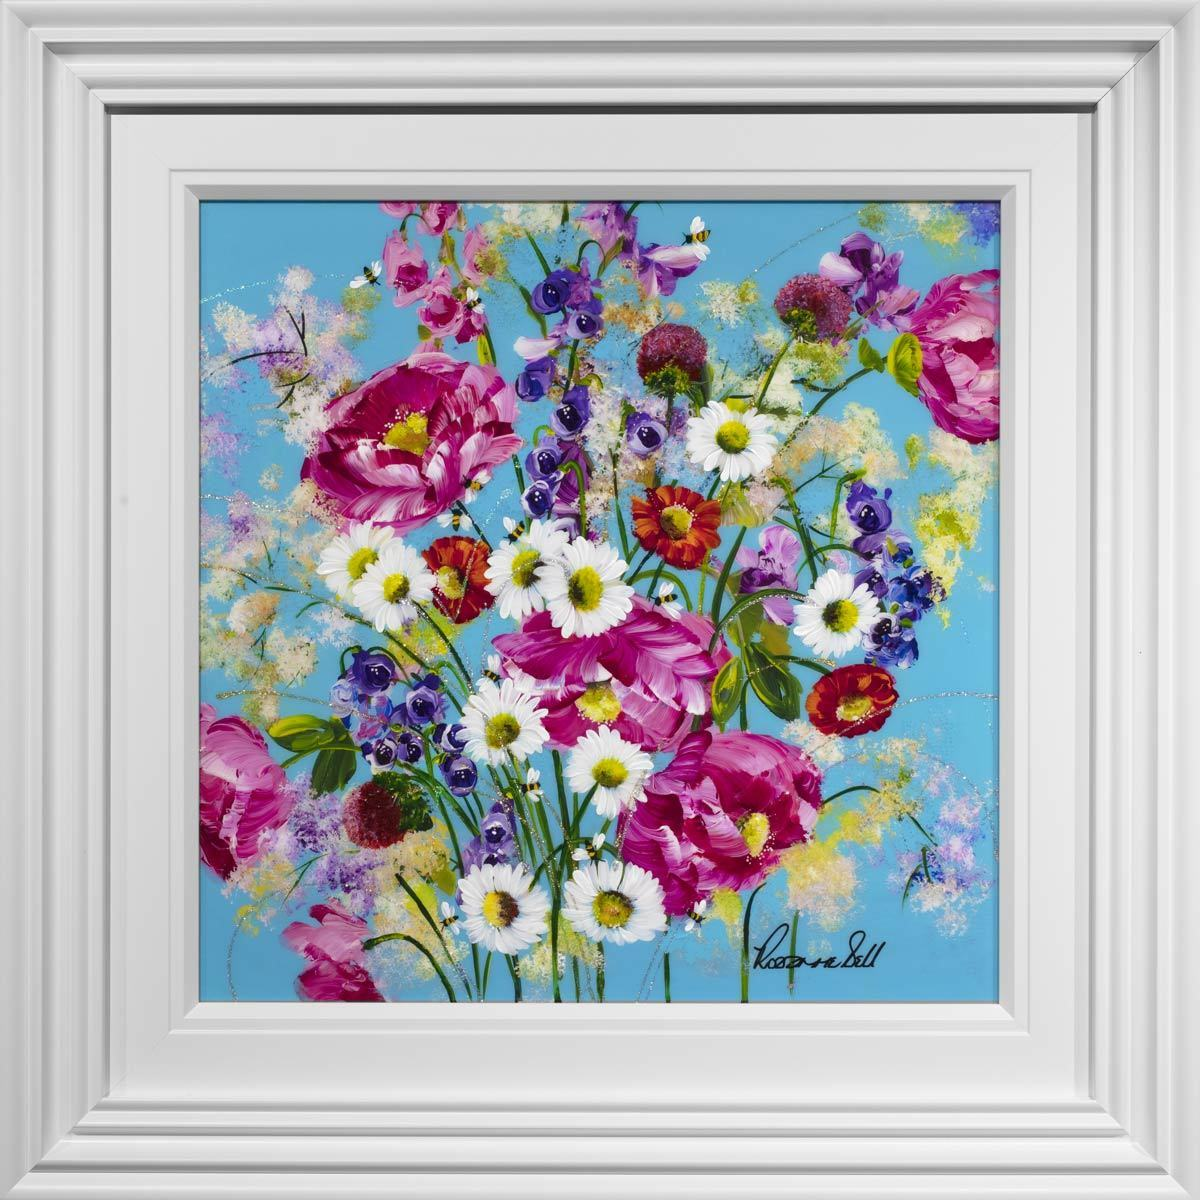 Pop Floral I - Original Rozanne Bell Framed